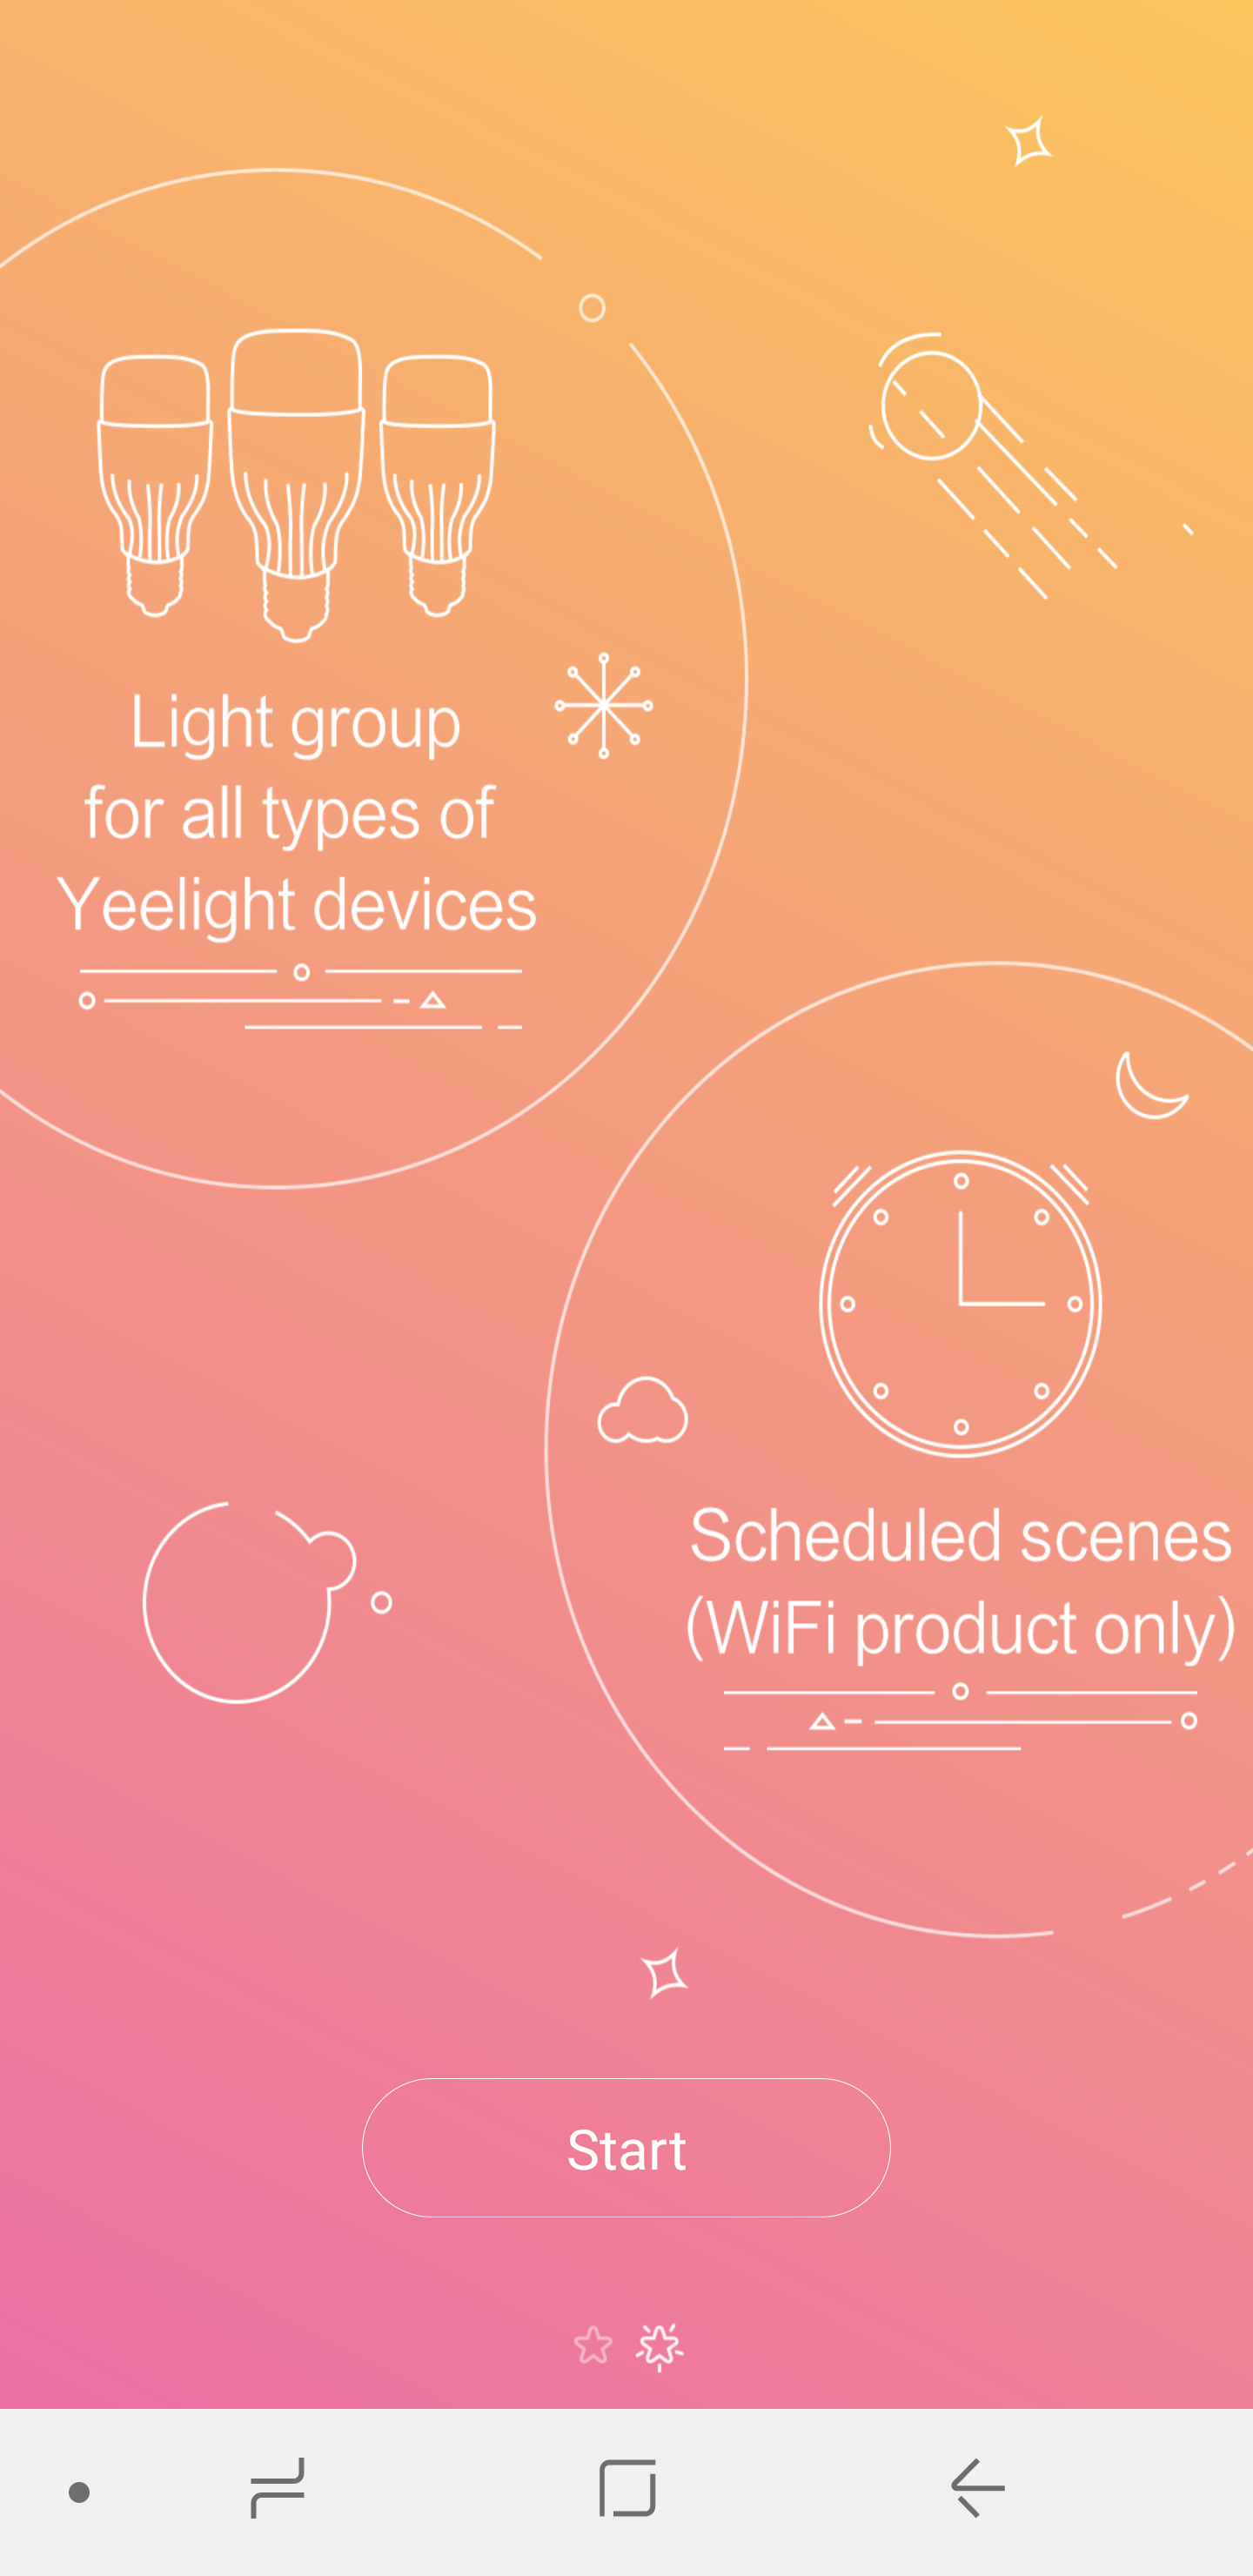 Xiaomi-Yeelight-Lampen-und-Glühbirnen-installieren-und-einrichten-4